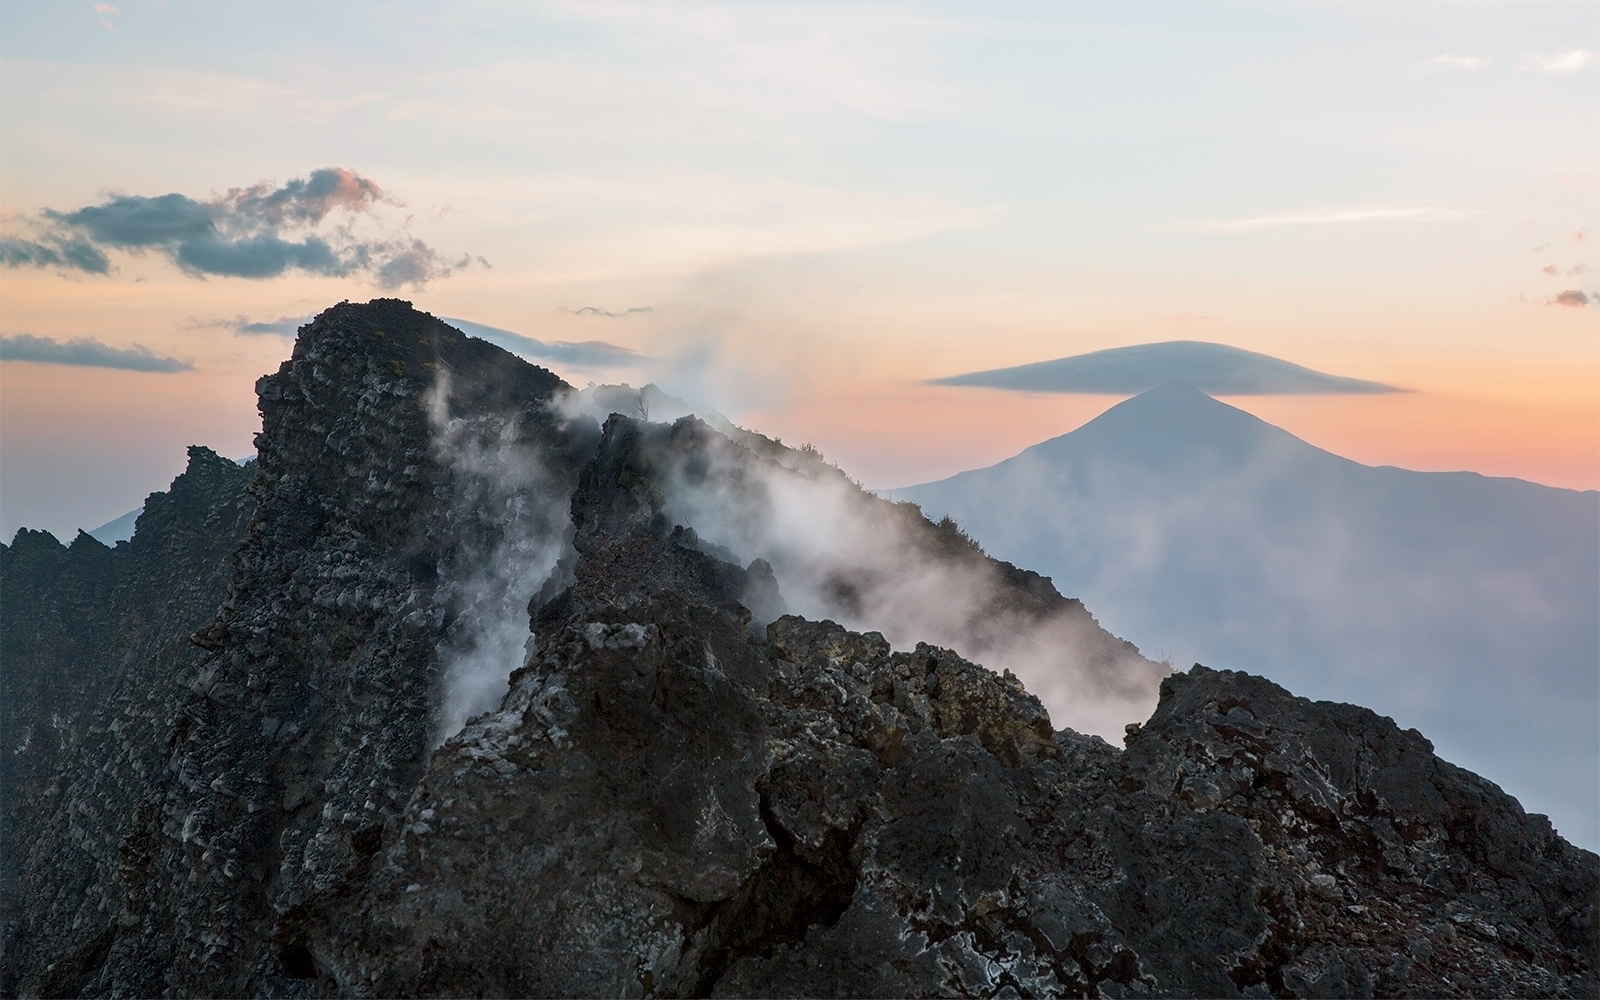 Sunrise on Mount Nyiragongo